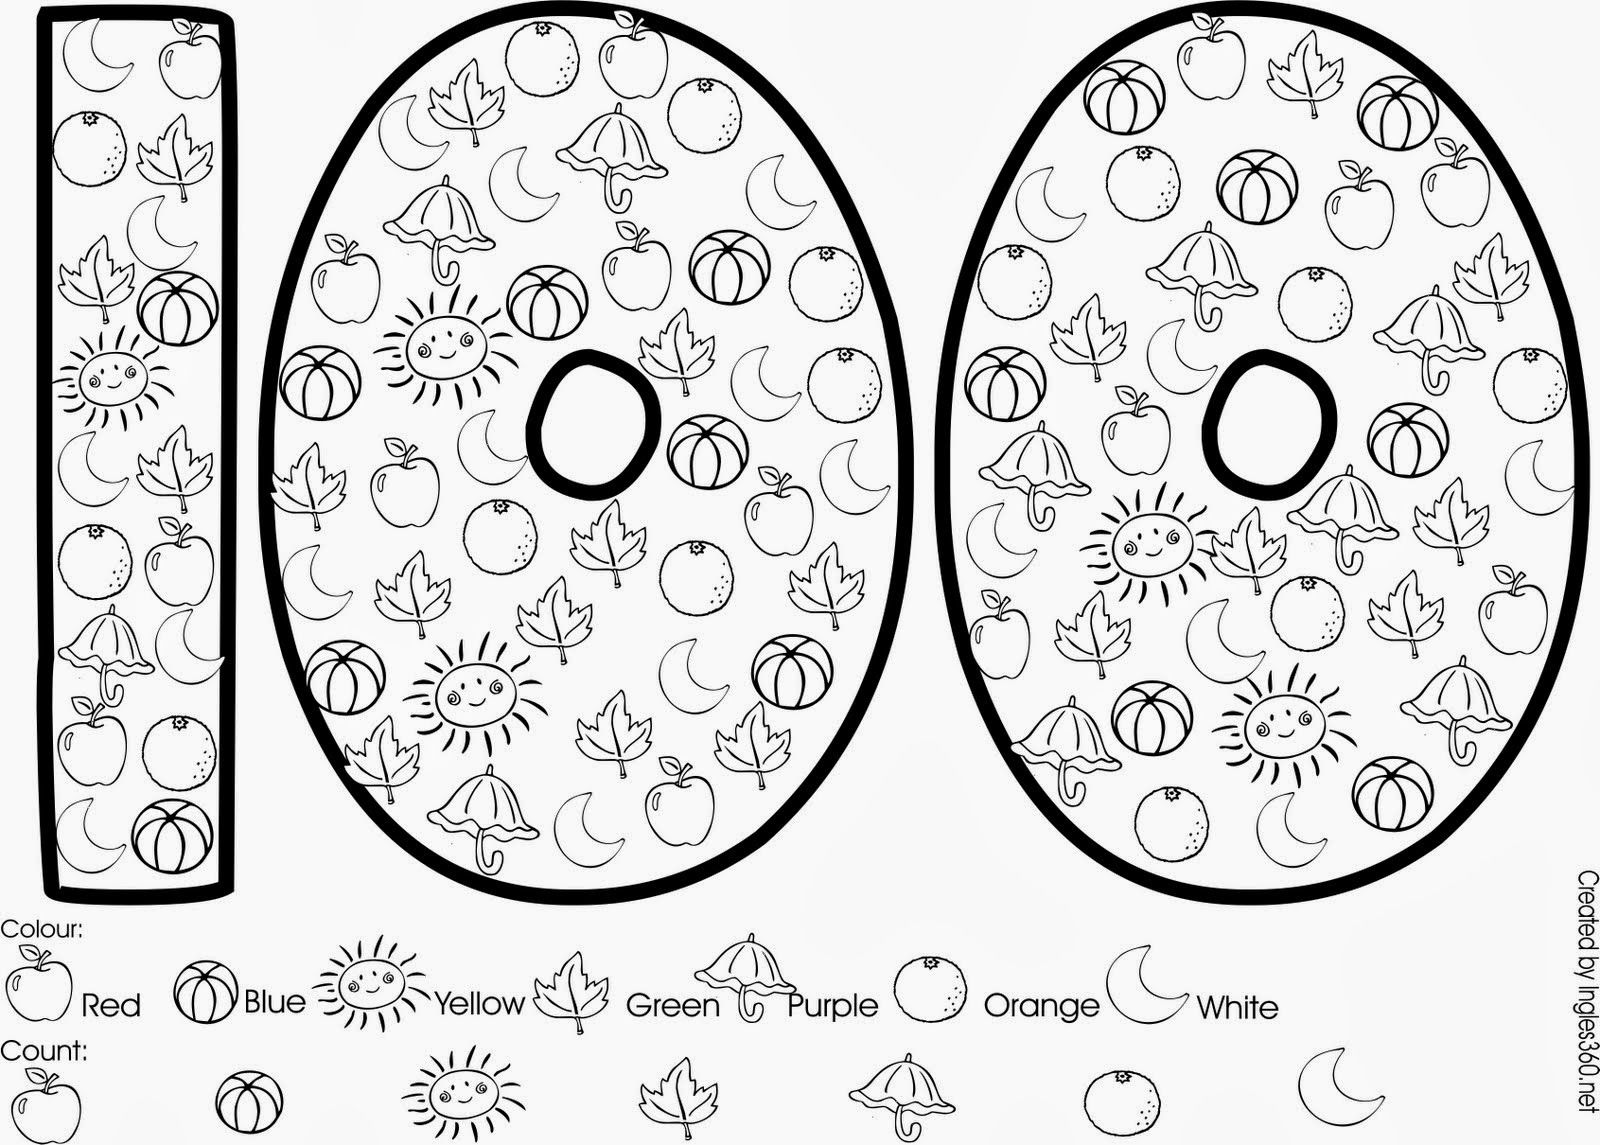 - 100 Day Practice Challenge (With Images) School Coloring Pages